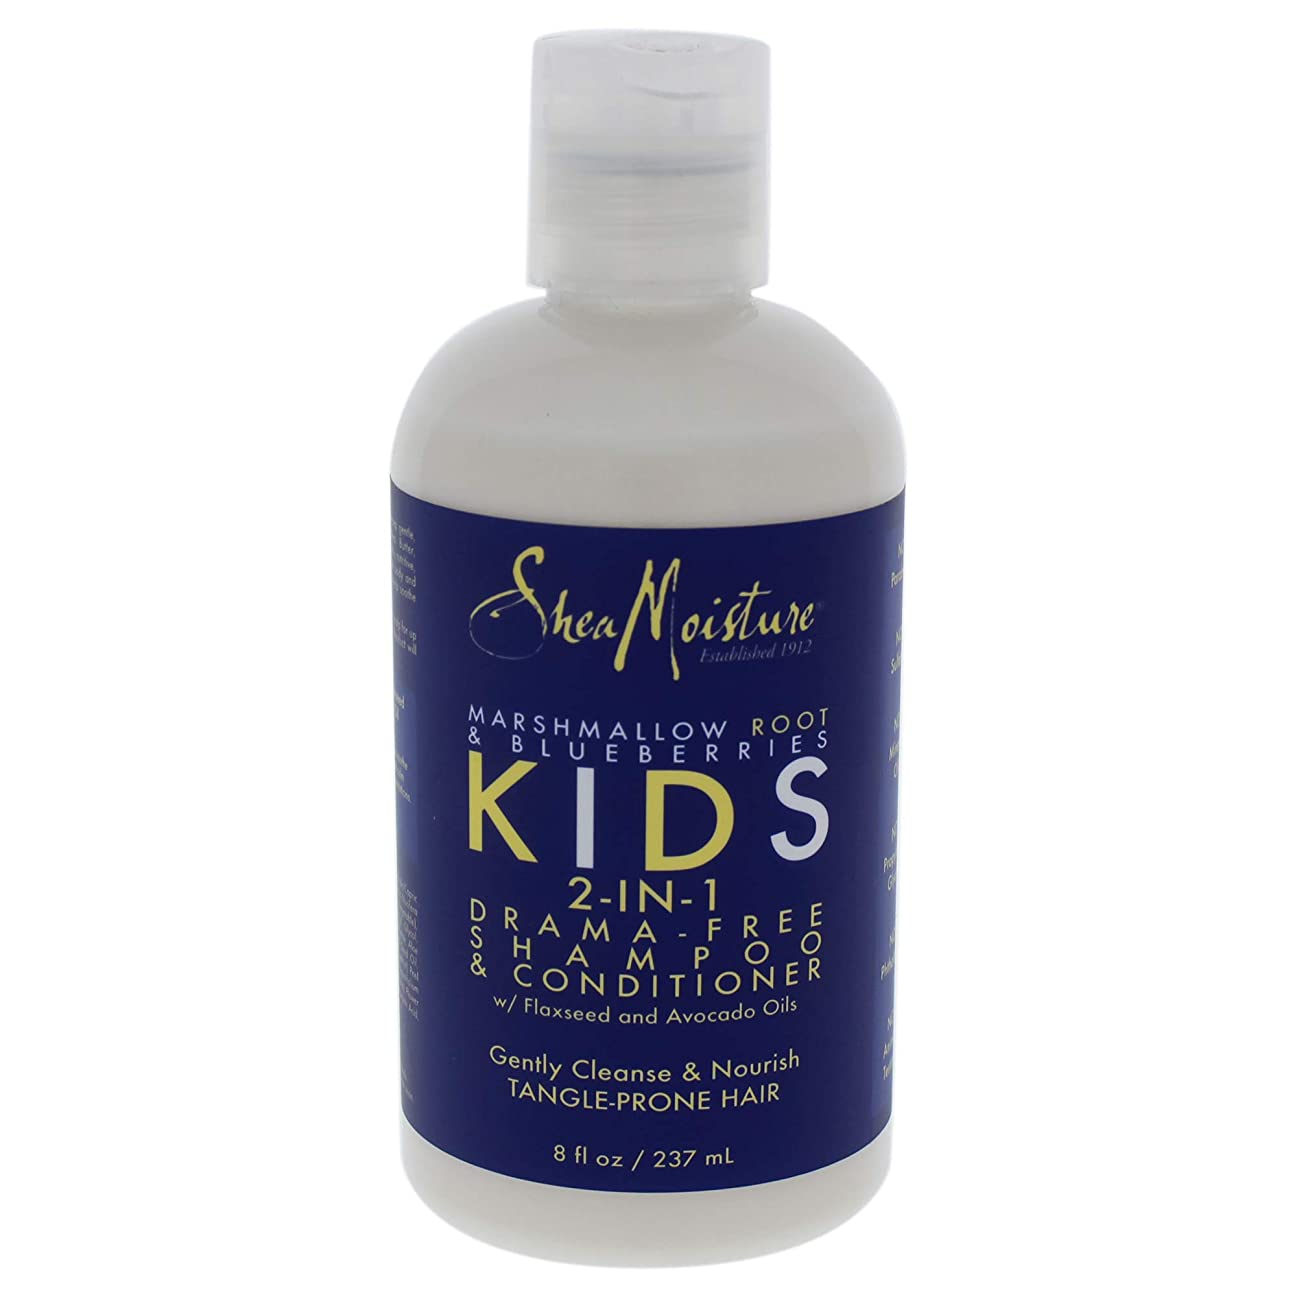 レビュー仮称低いSheaMoisture KIDS 2-IN-1 DRAMA-FREE SHAMPOO & CONDITIONER 8 fl oz